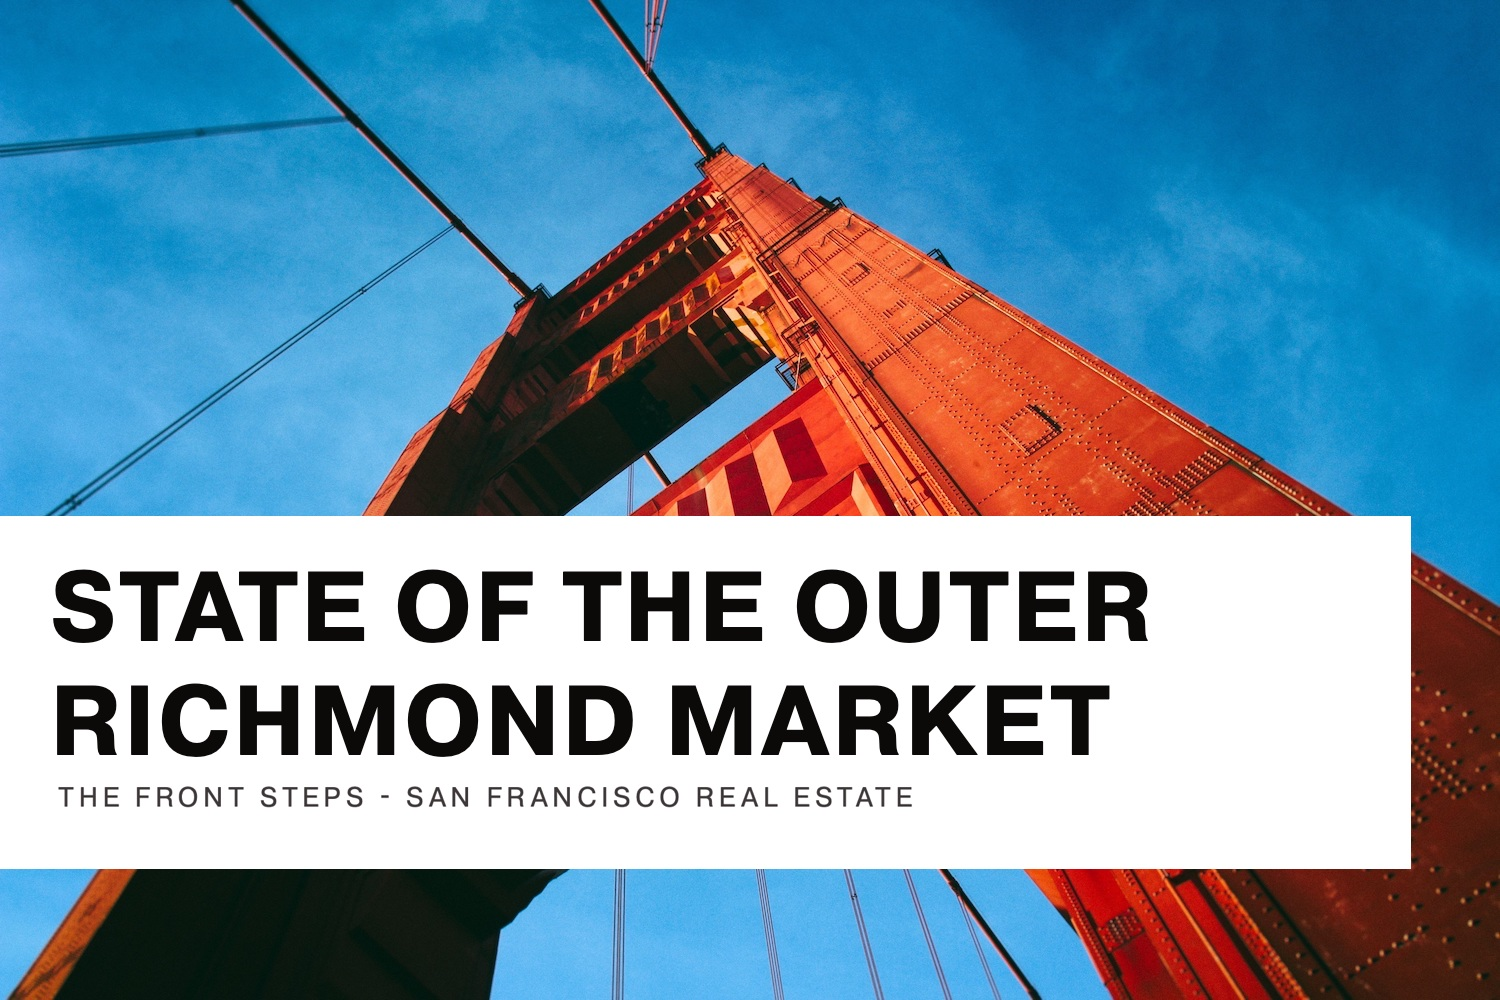 State of The Outer Richmond Market